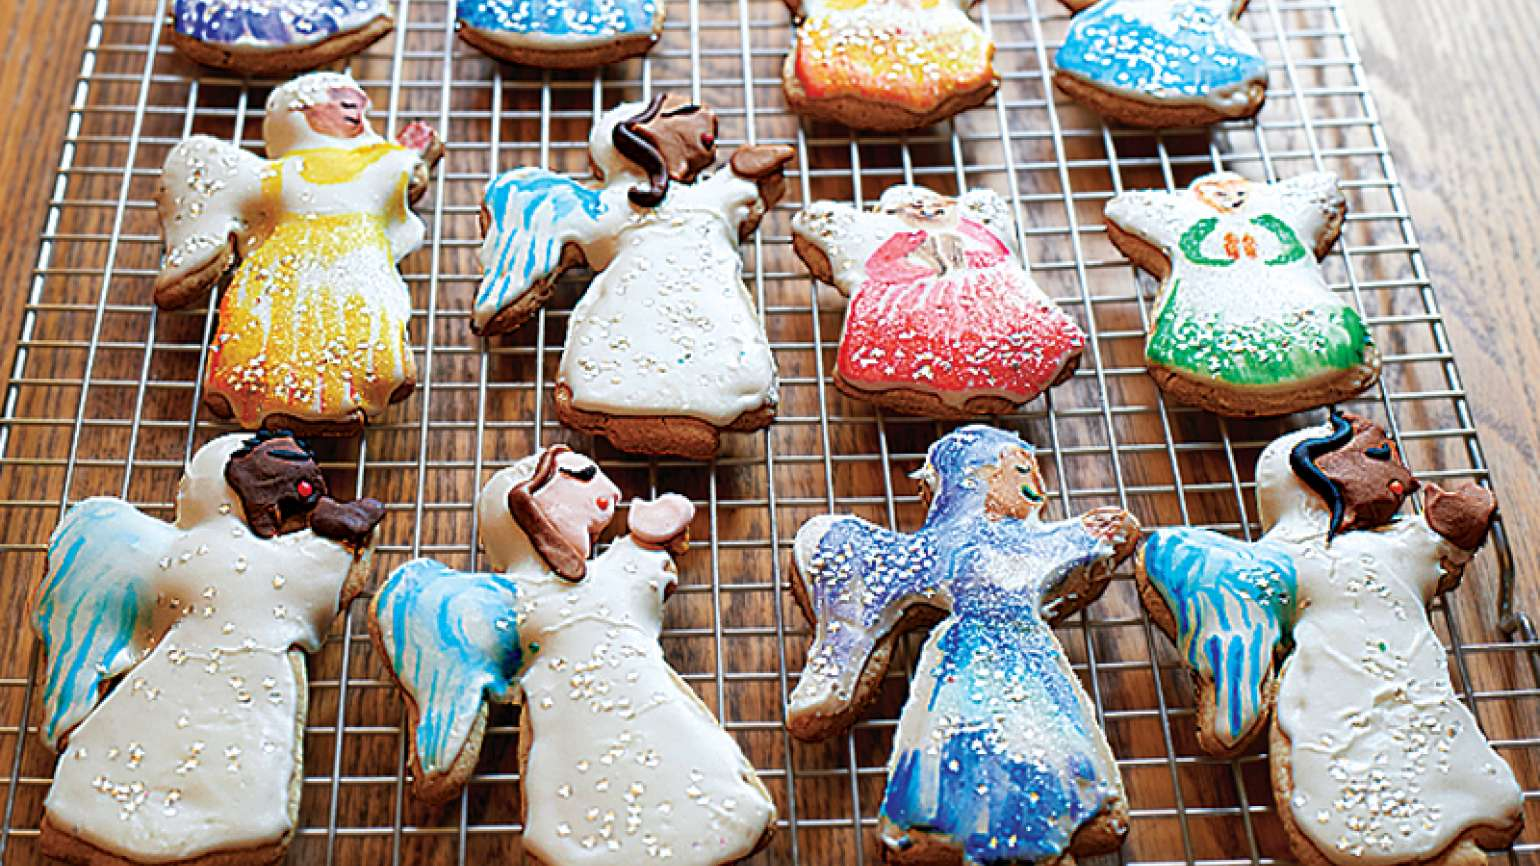 A rack of Michelle's Christmas Cut-Out Cookies, just out of the oven